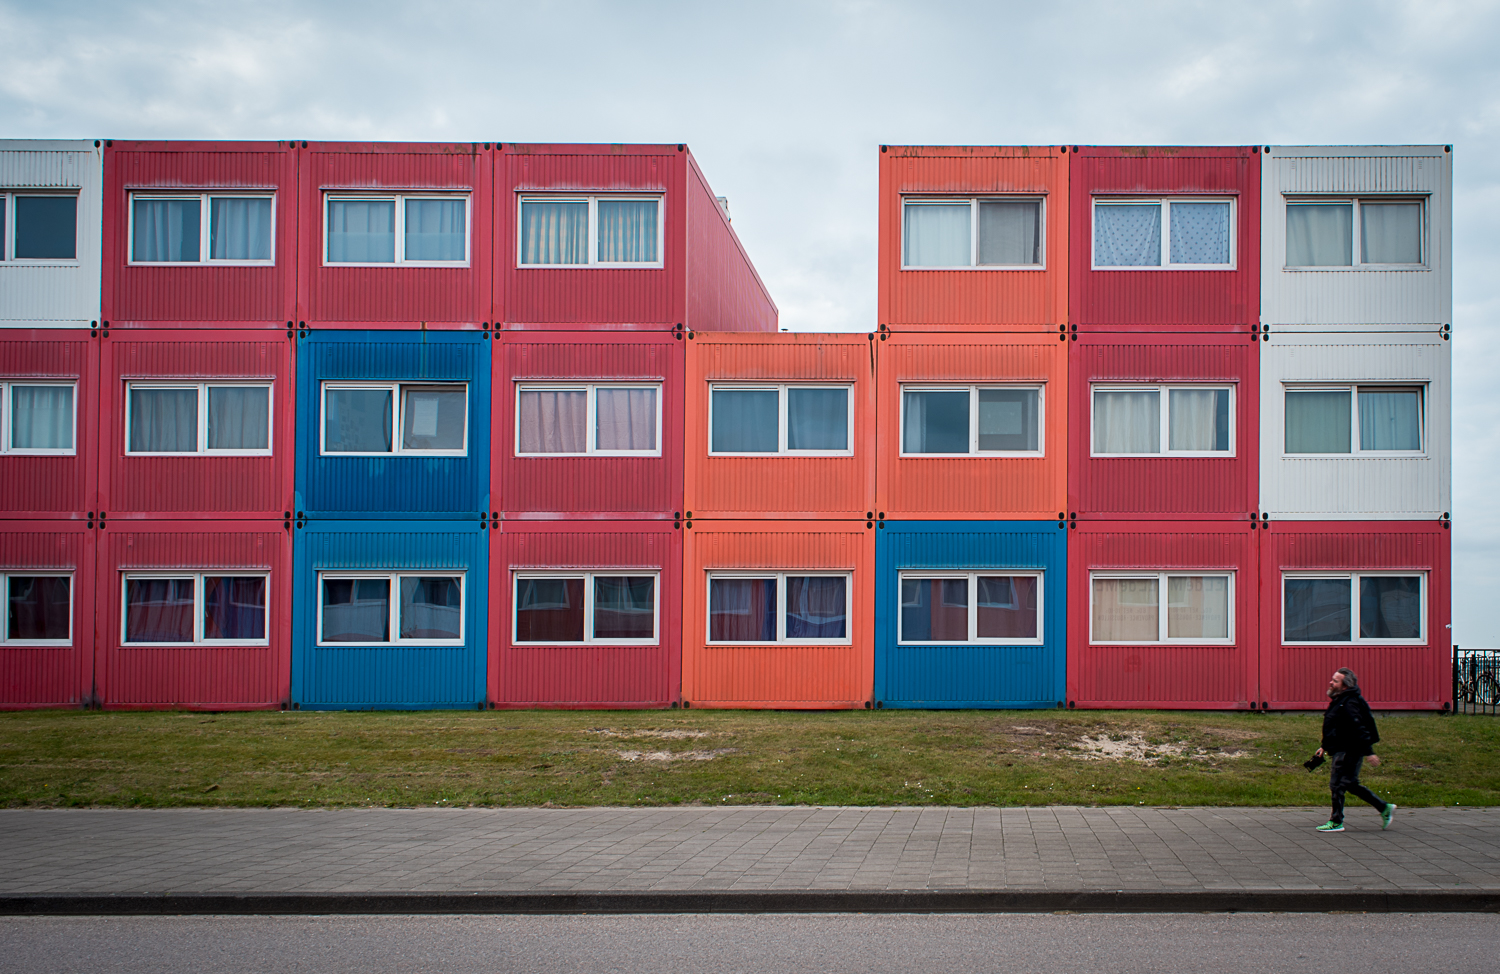 © Ayash Basu. Shipping containers converted into colorful, modular, and super cheap student housing for emerging artists. Yes, it's basic and a metal box but one can't beat the price for being in the heart of Amsterdam, where affordable housing is increasingly a distant dream.